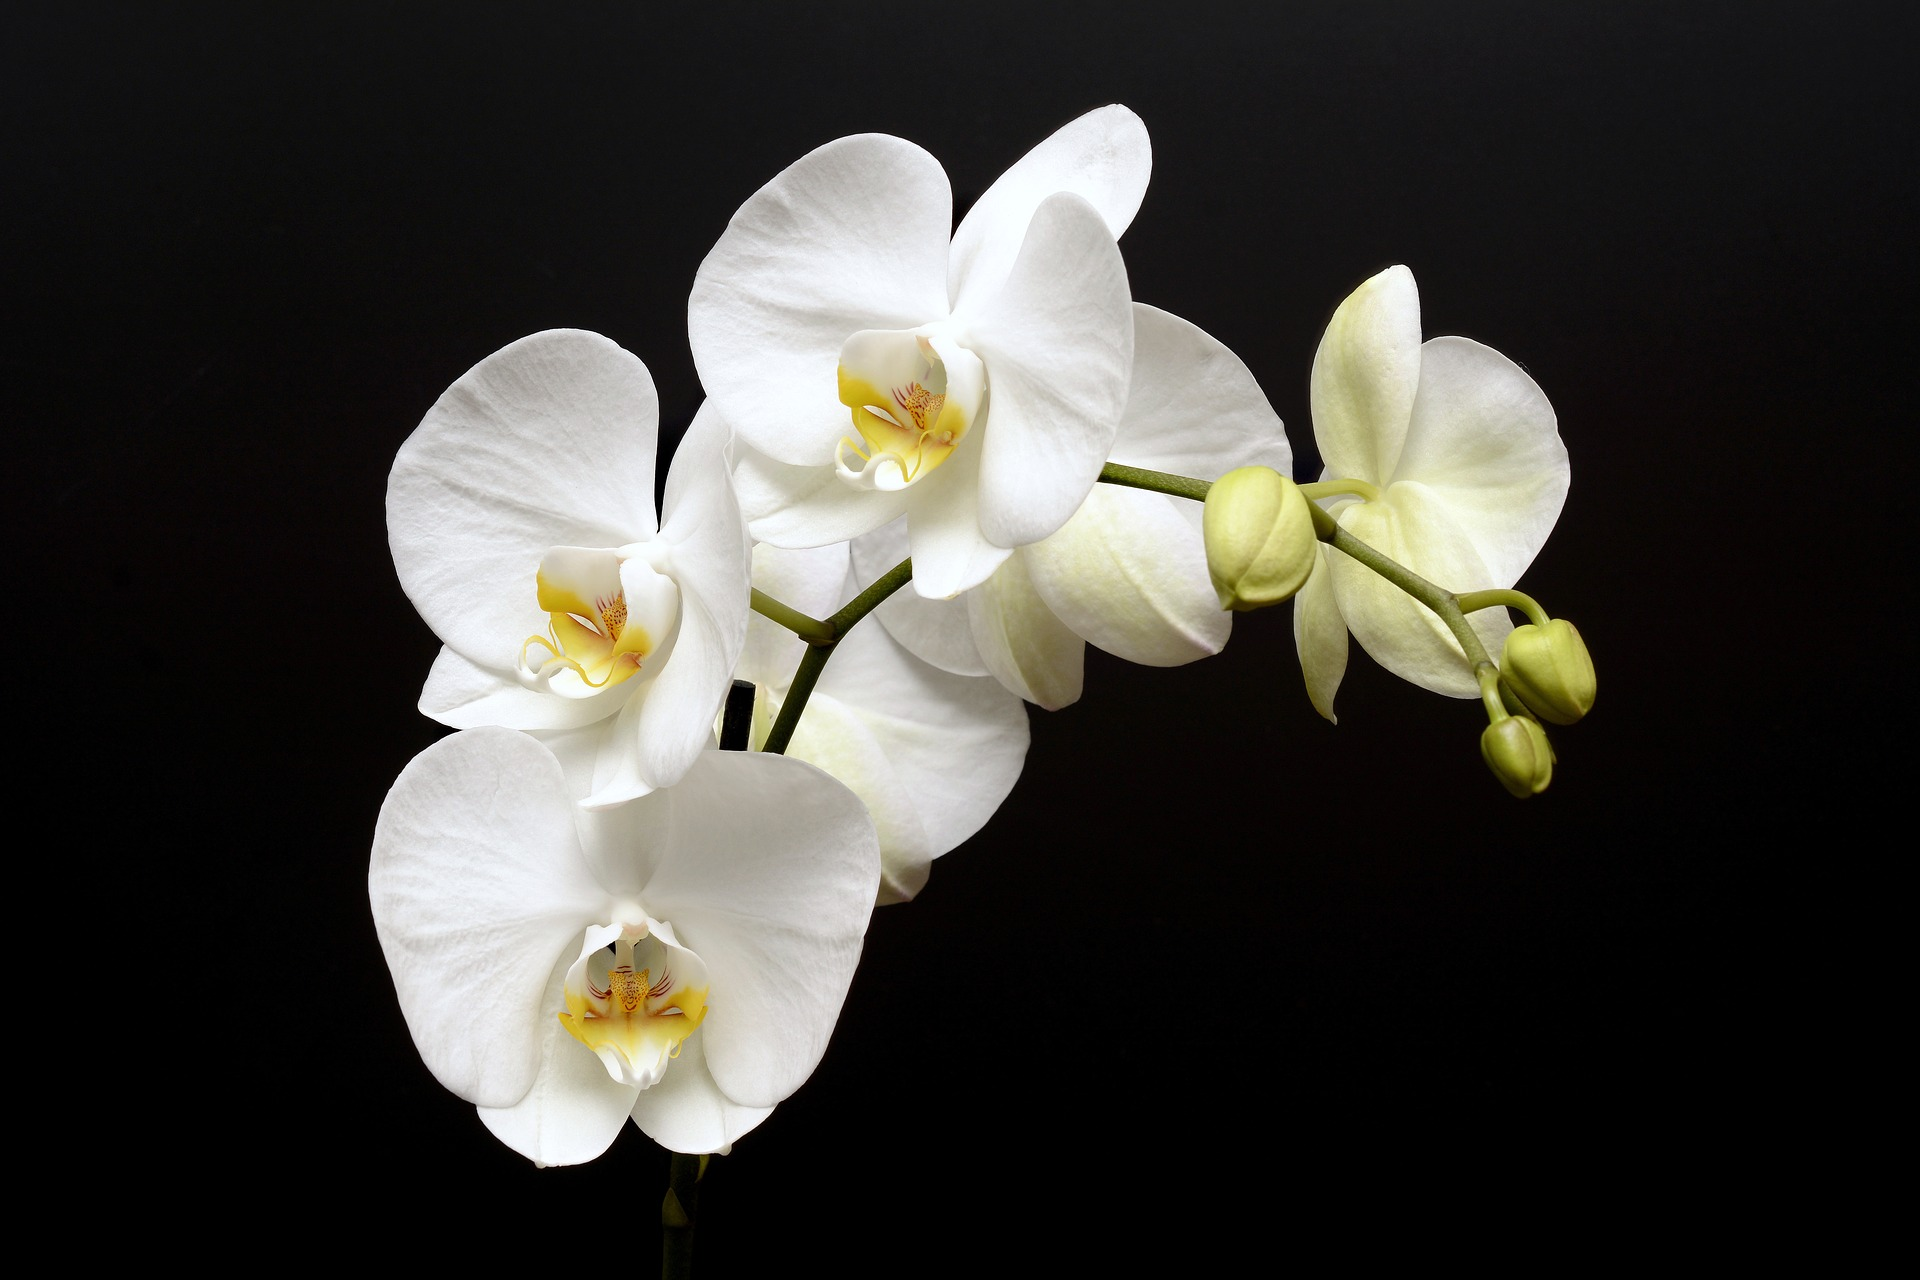 There are over 25,000 species of orchids around the world. They come in countless sizes, colors, and even fragrances.